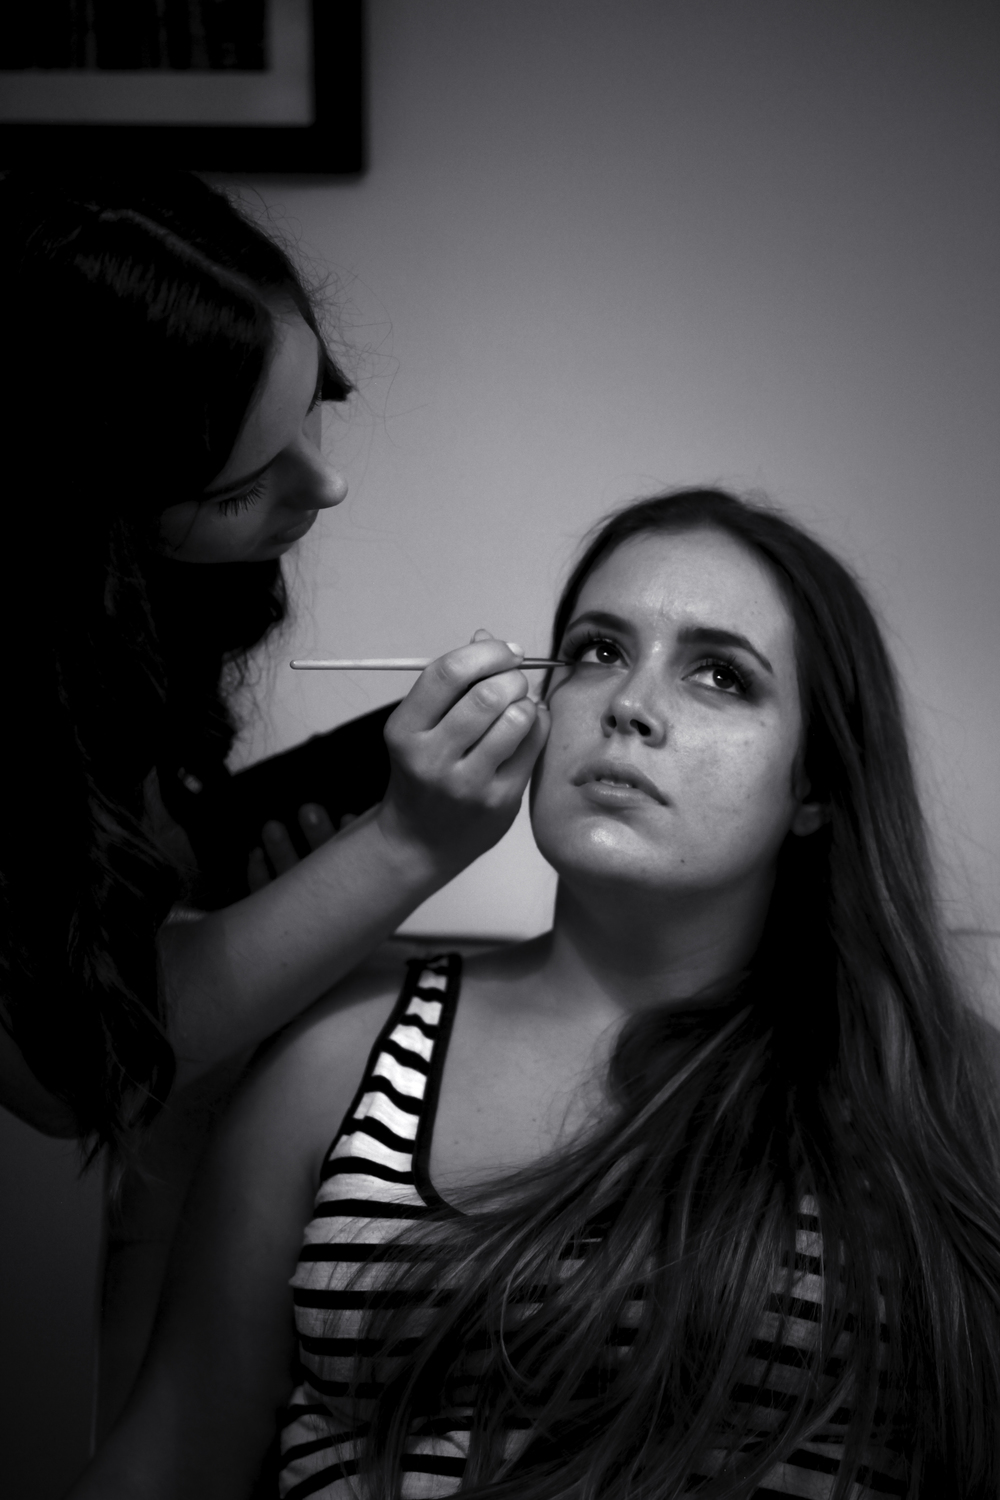 Candid moment: best friend, bridesmaid, witness and make-up artist Adna puts the finishing touches on bride Cassi.